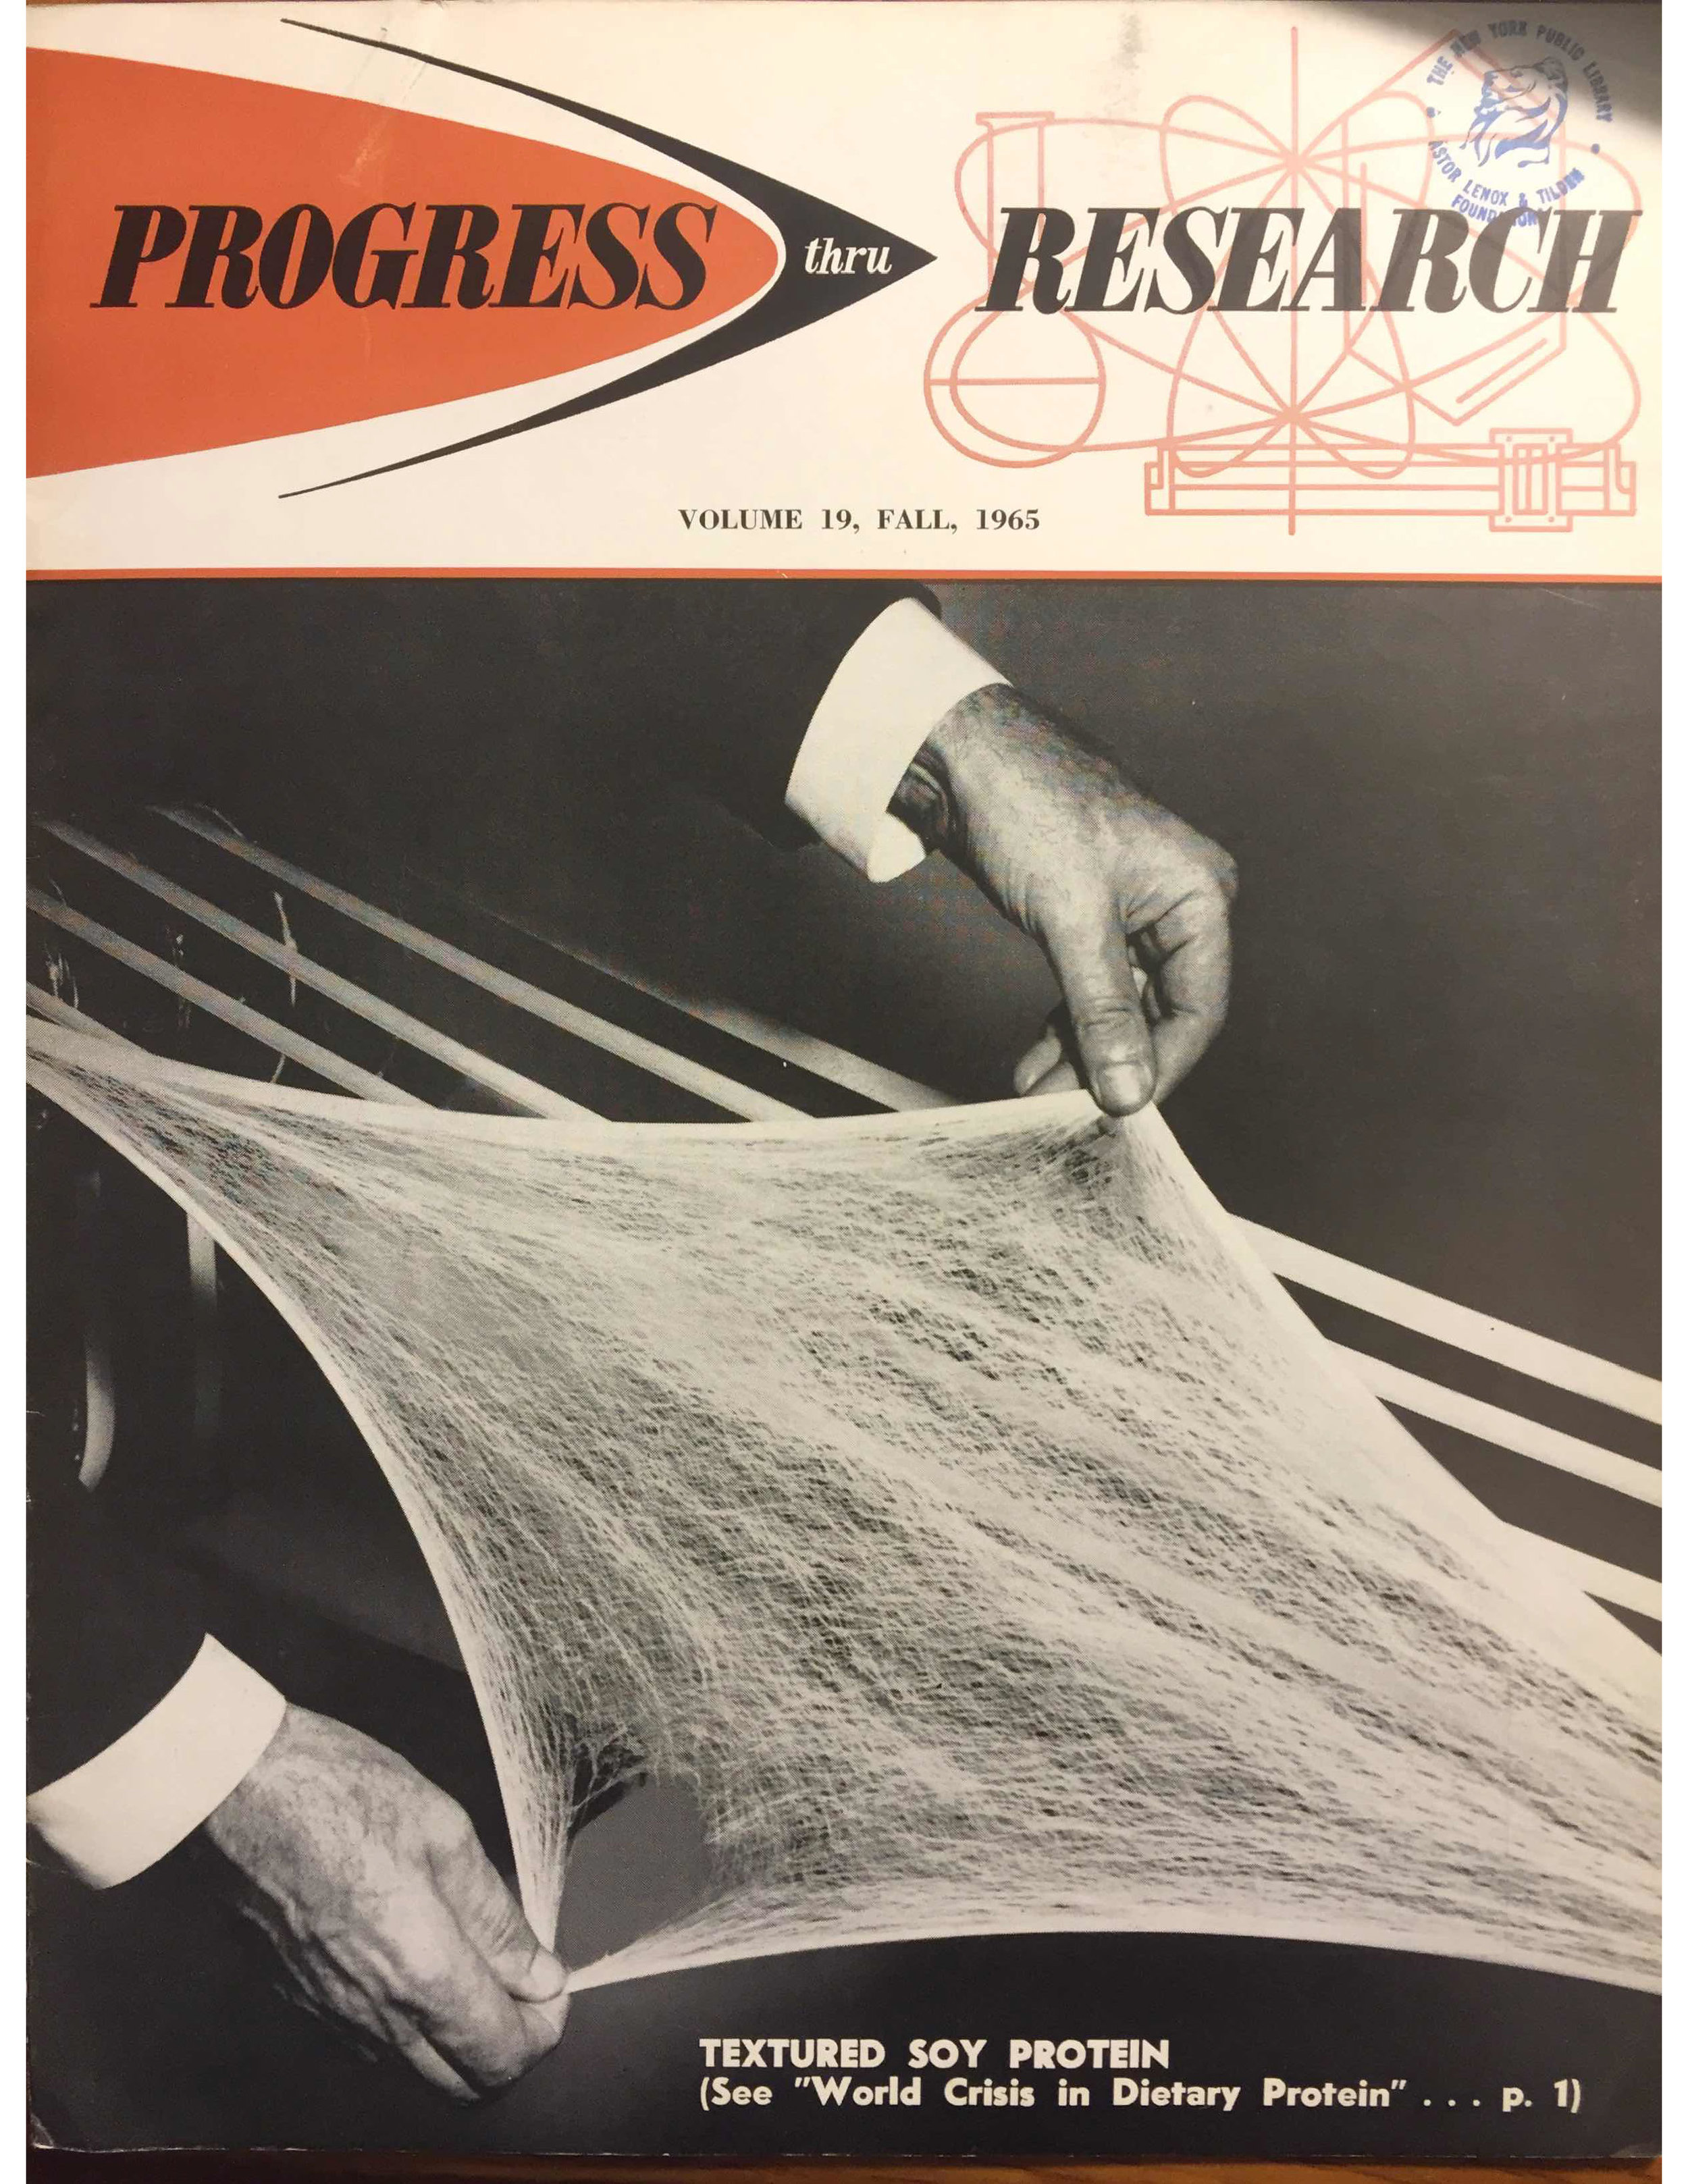 Does this proteinaceous soybean gauze hold the potential to save the world, without sacrificing deliciousness? Read on to find out!